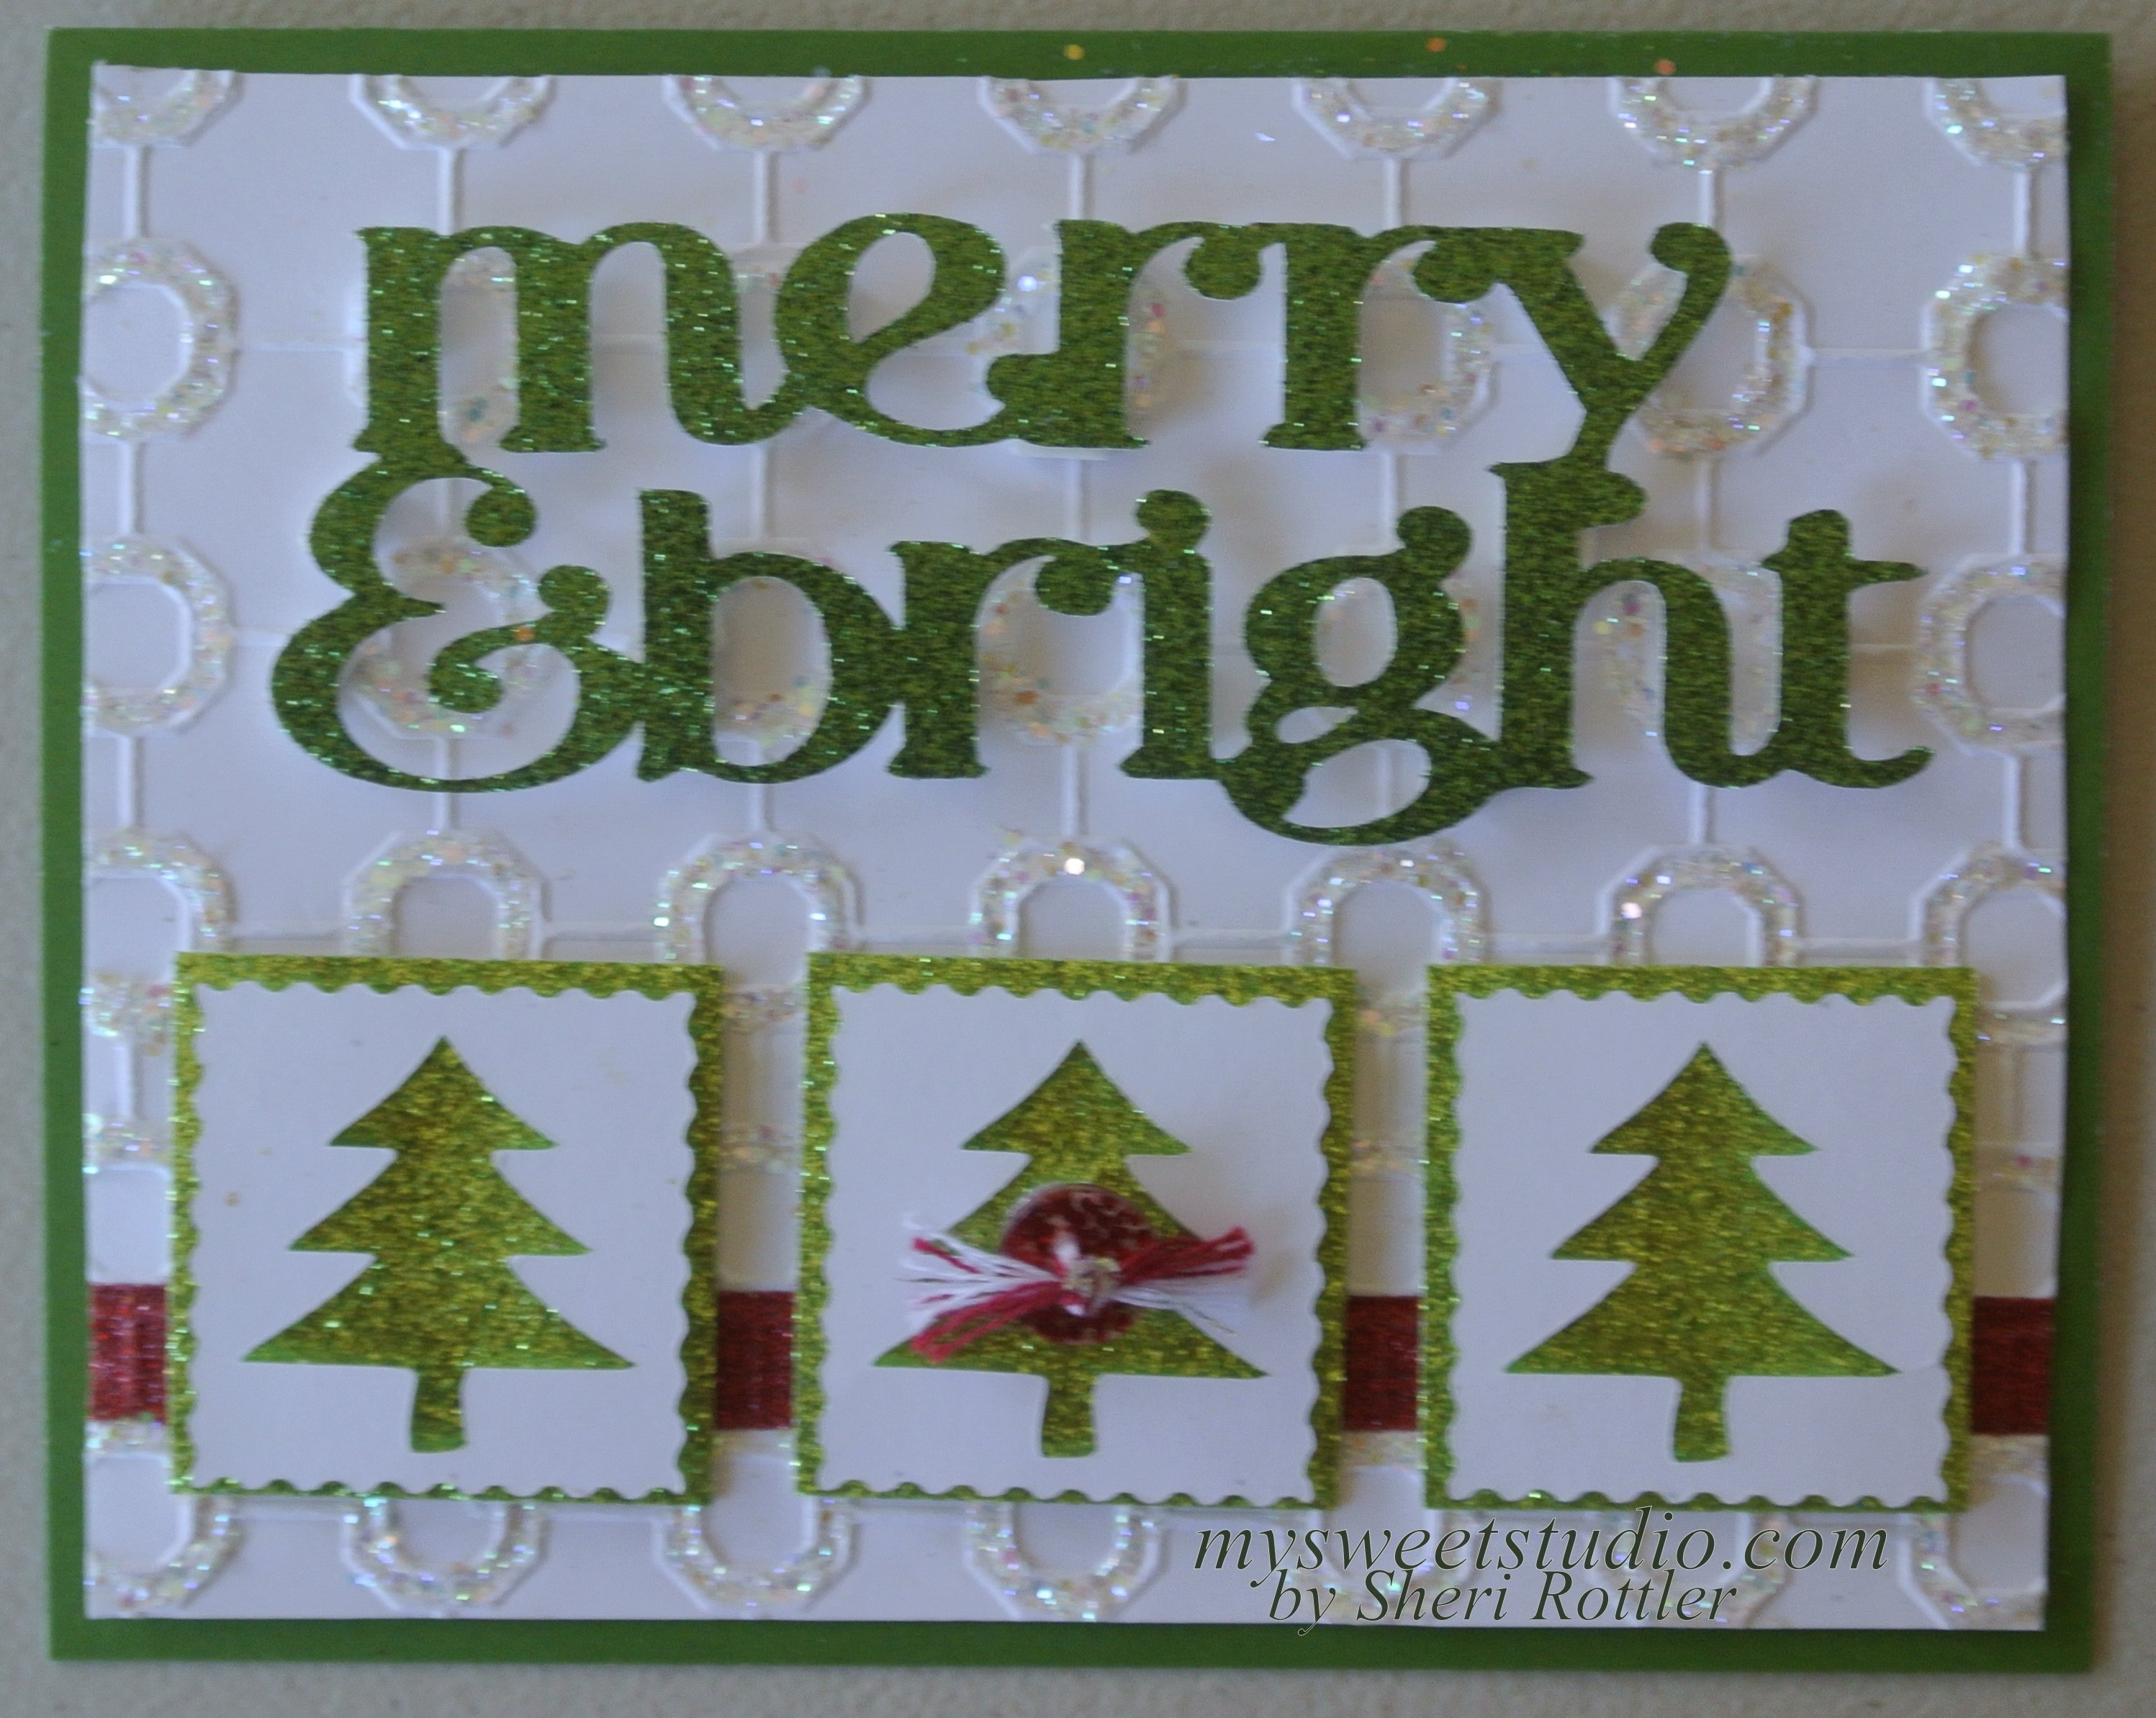 10 Best Close To My Heart Card Ideas tis the season to be merry bright my sweet studio 2021